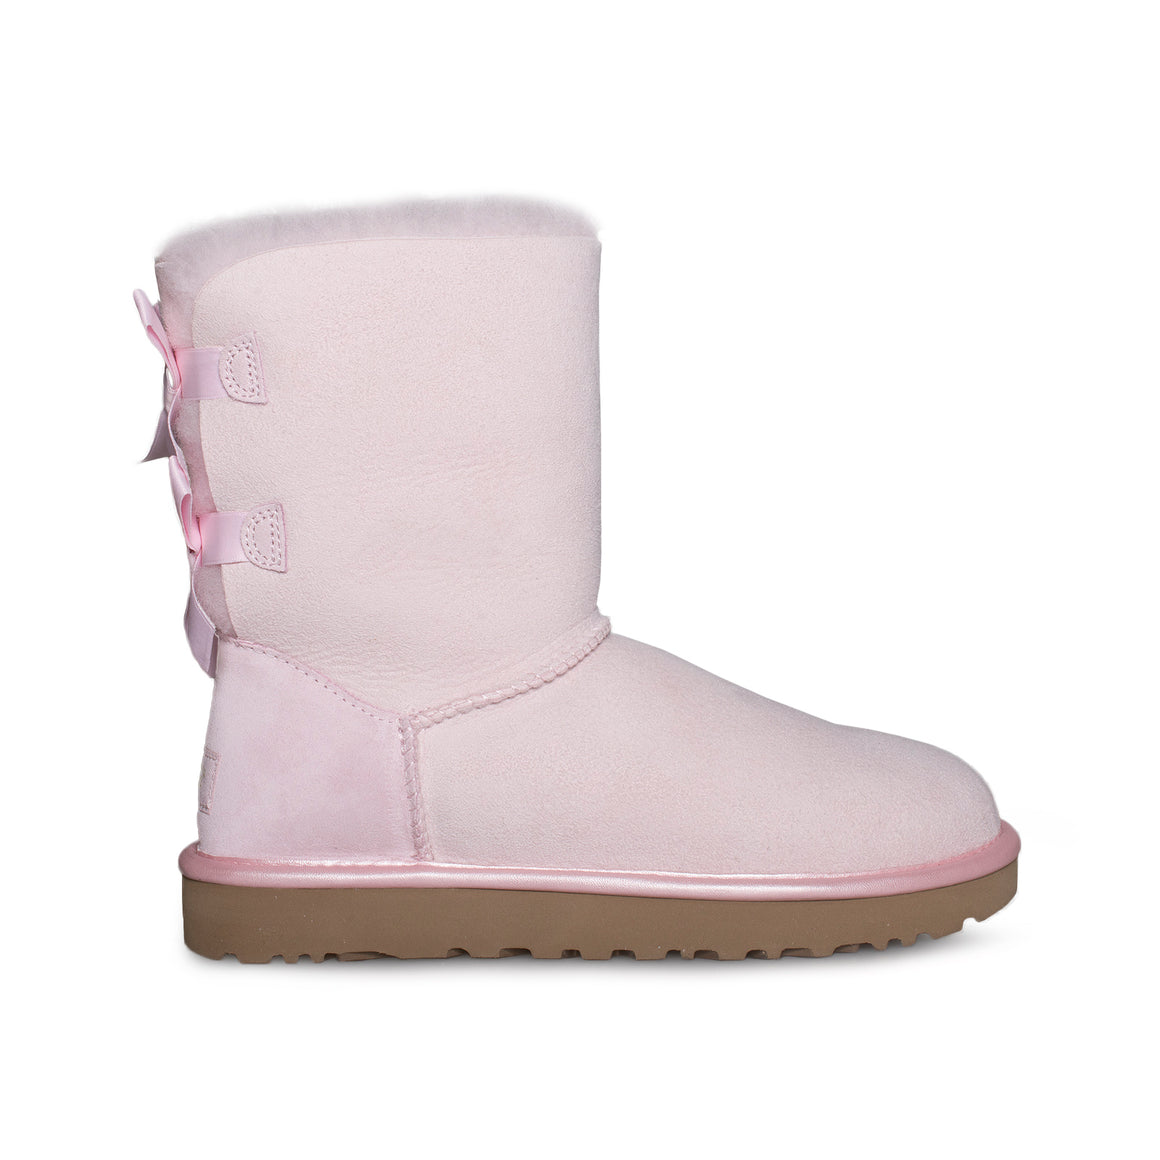 UGG Bailey Bow II Metallic Seashell Pink Boots - Youth